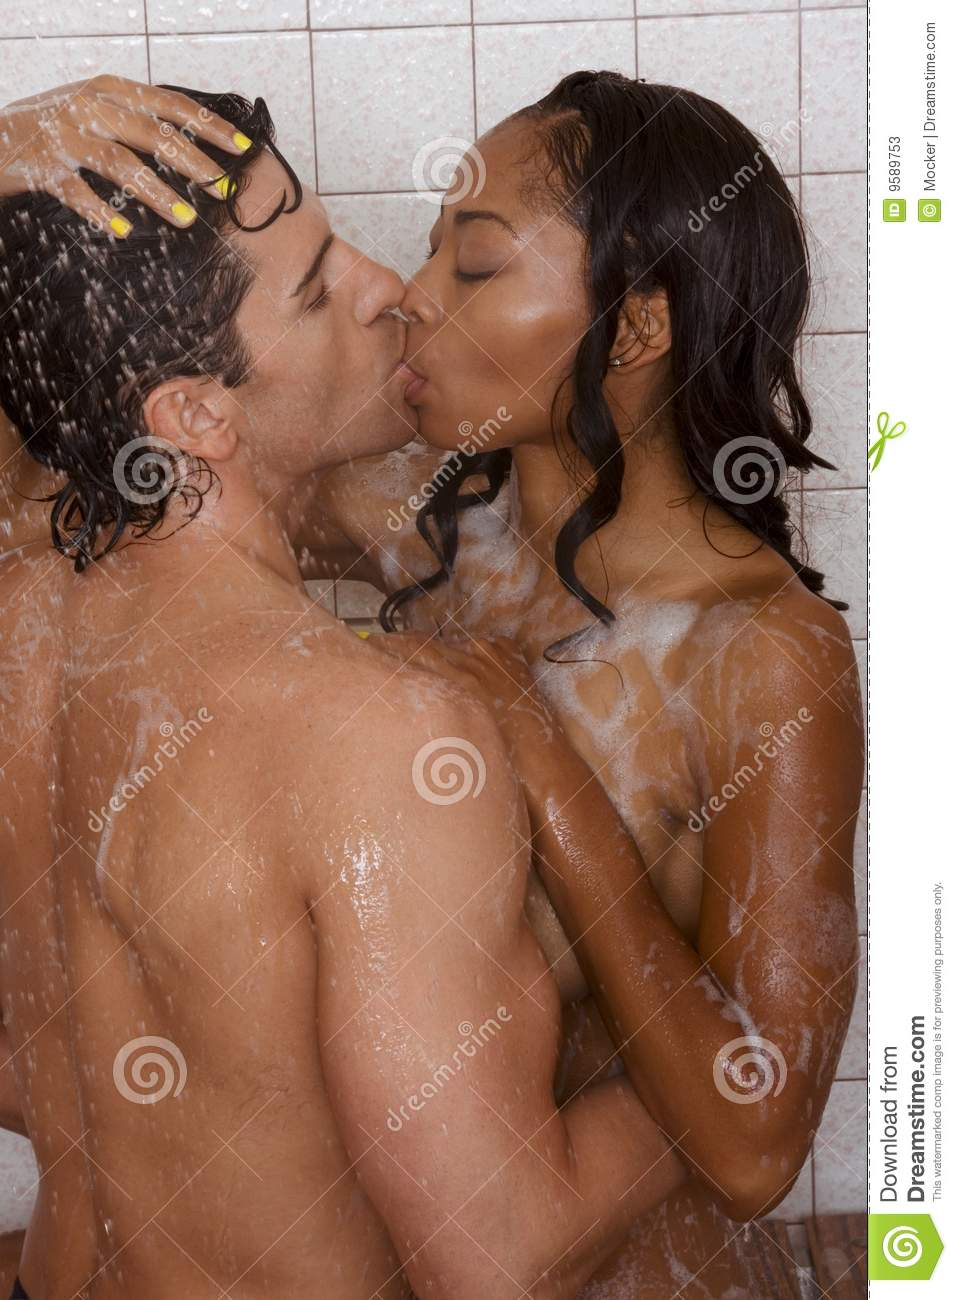 from Avery naked couples in the shower kissing